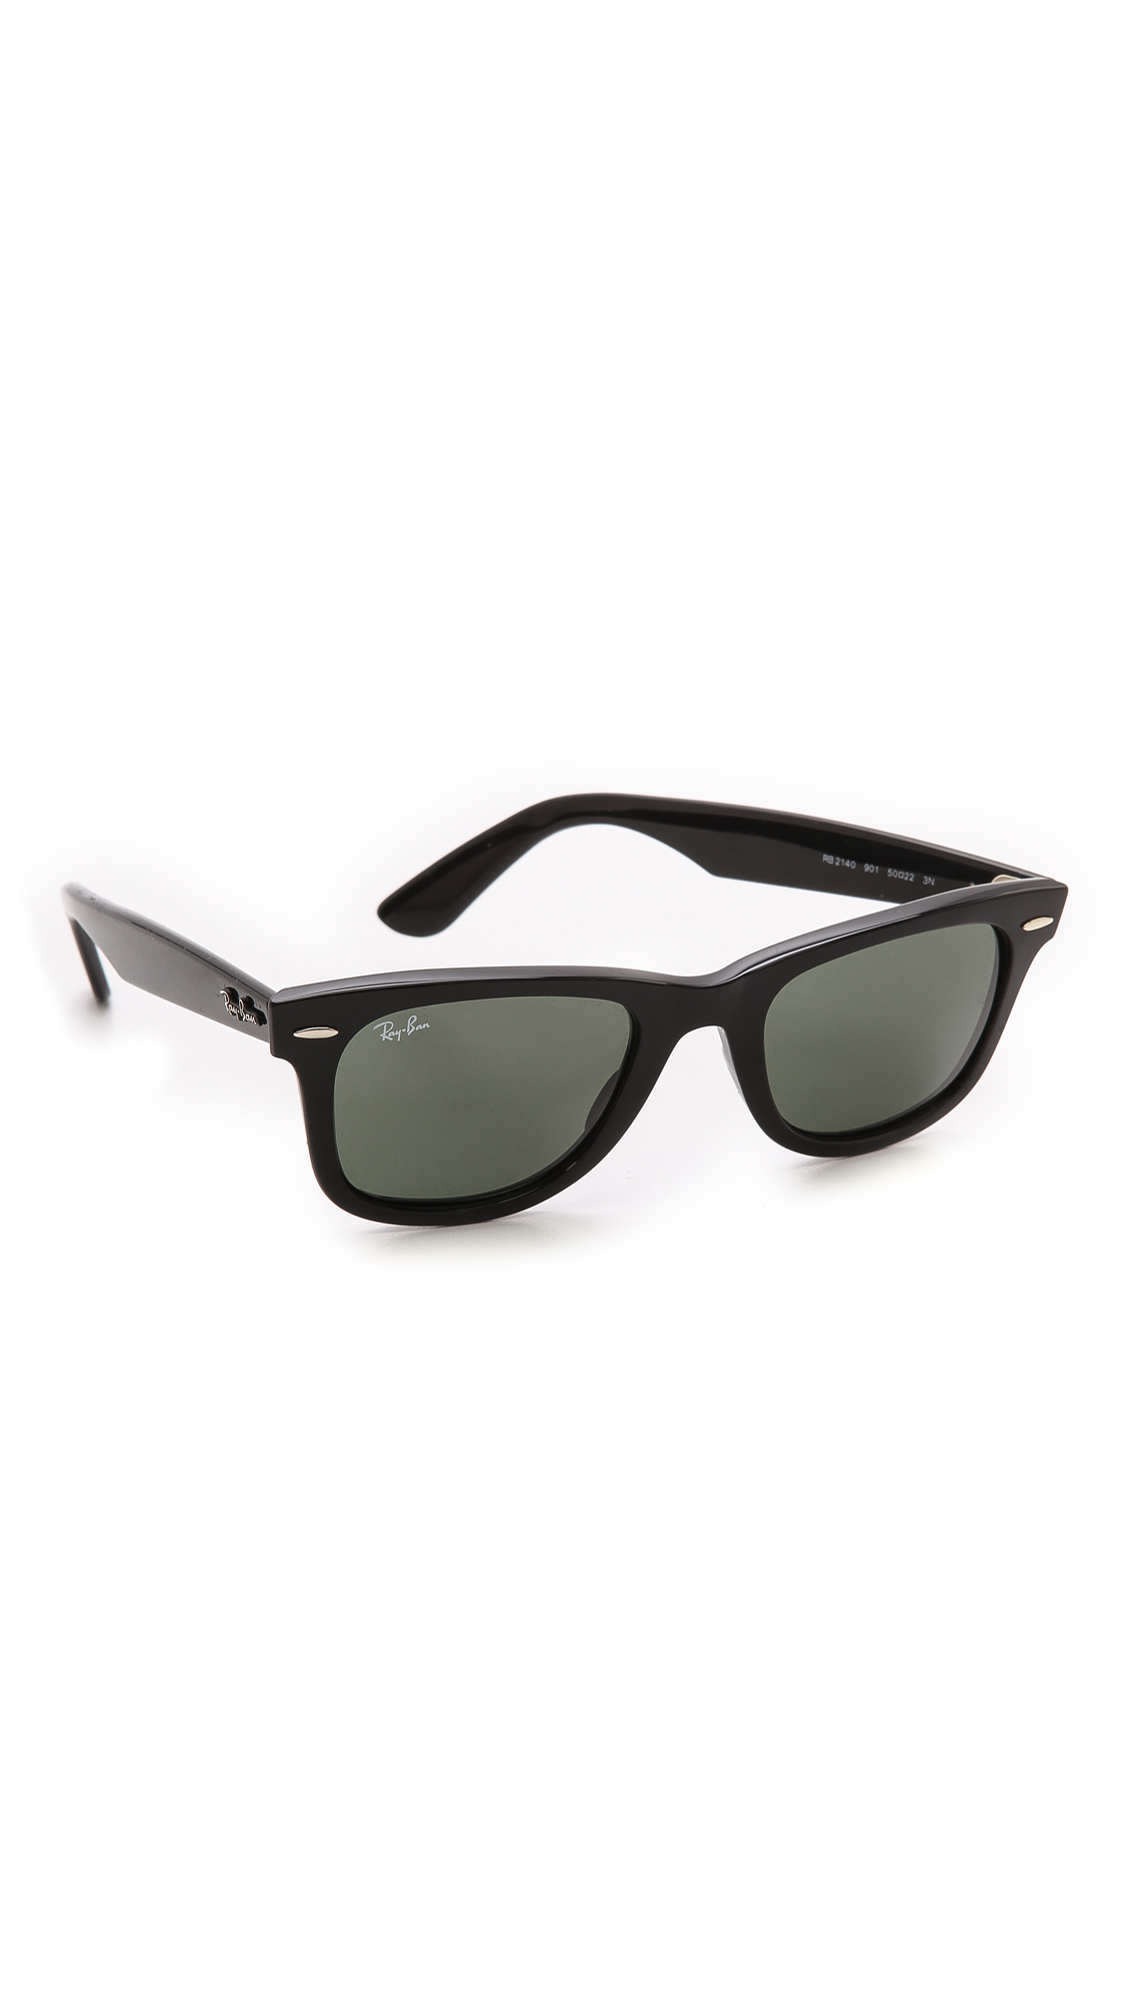 68cd95ce1d Ray-Ban Original Wayfarer Sunglasses